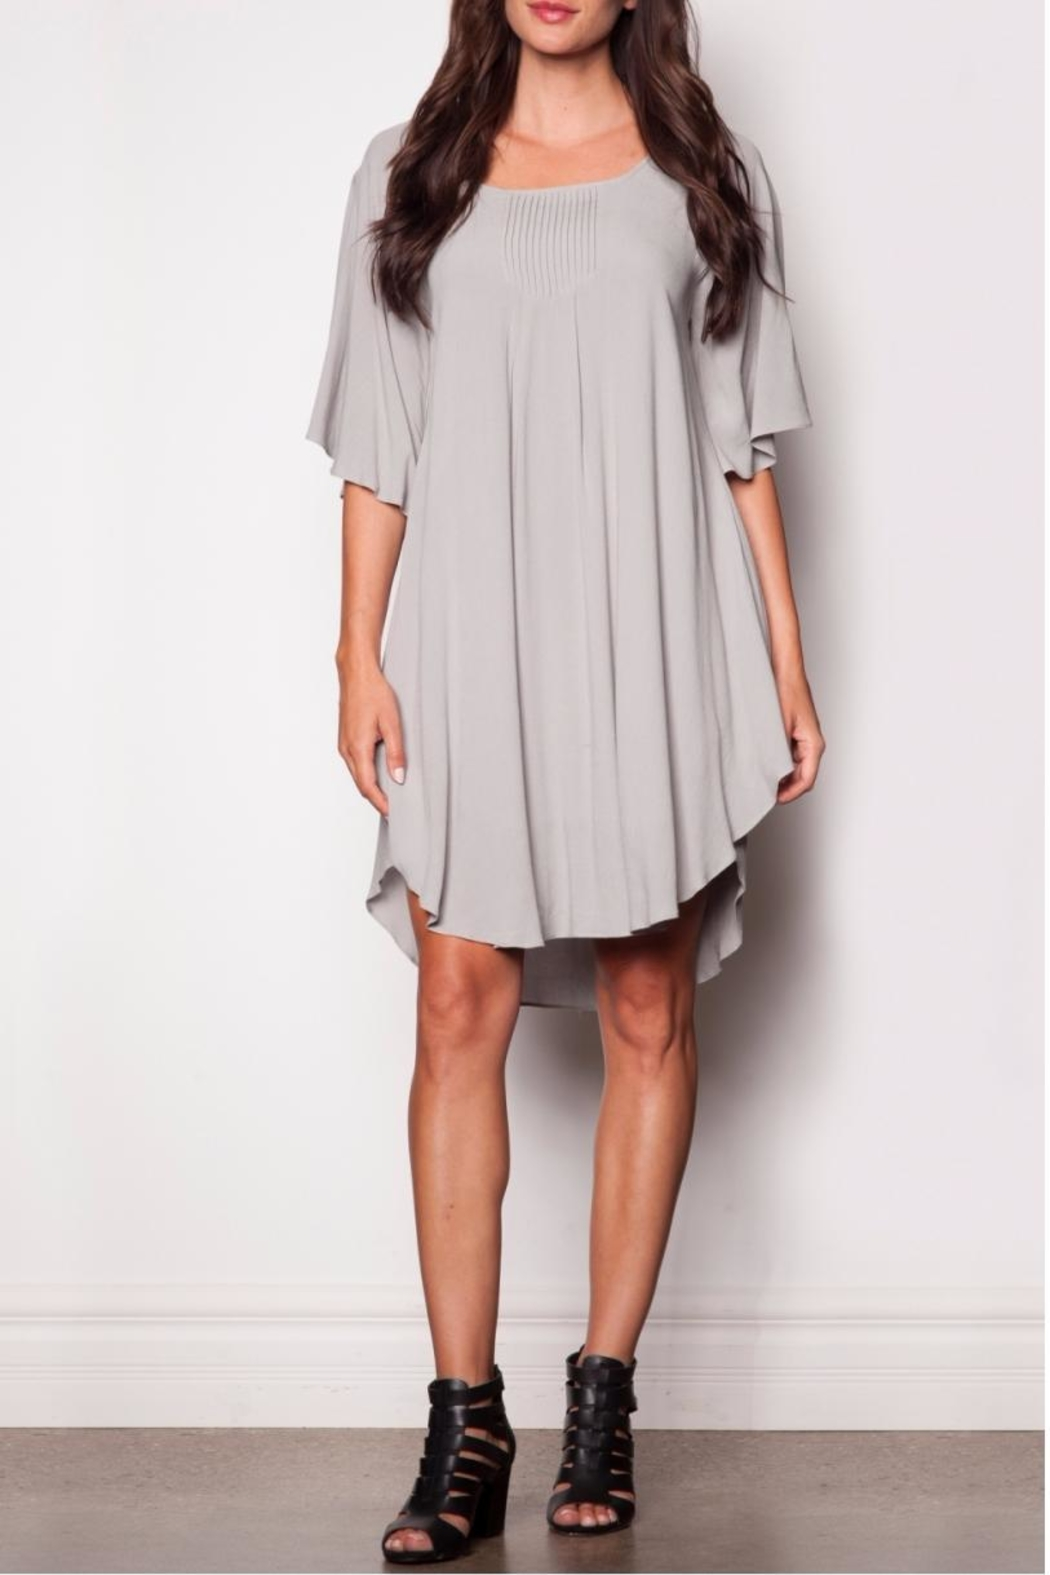 Pink Martini Collection Flowing Grey Dress - Main Image